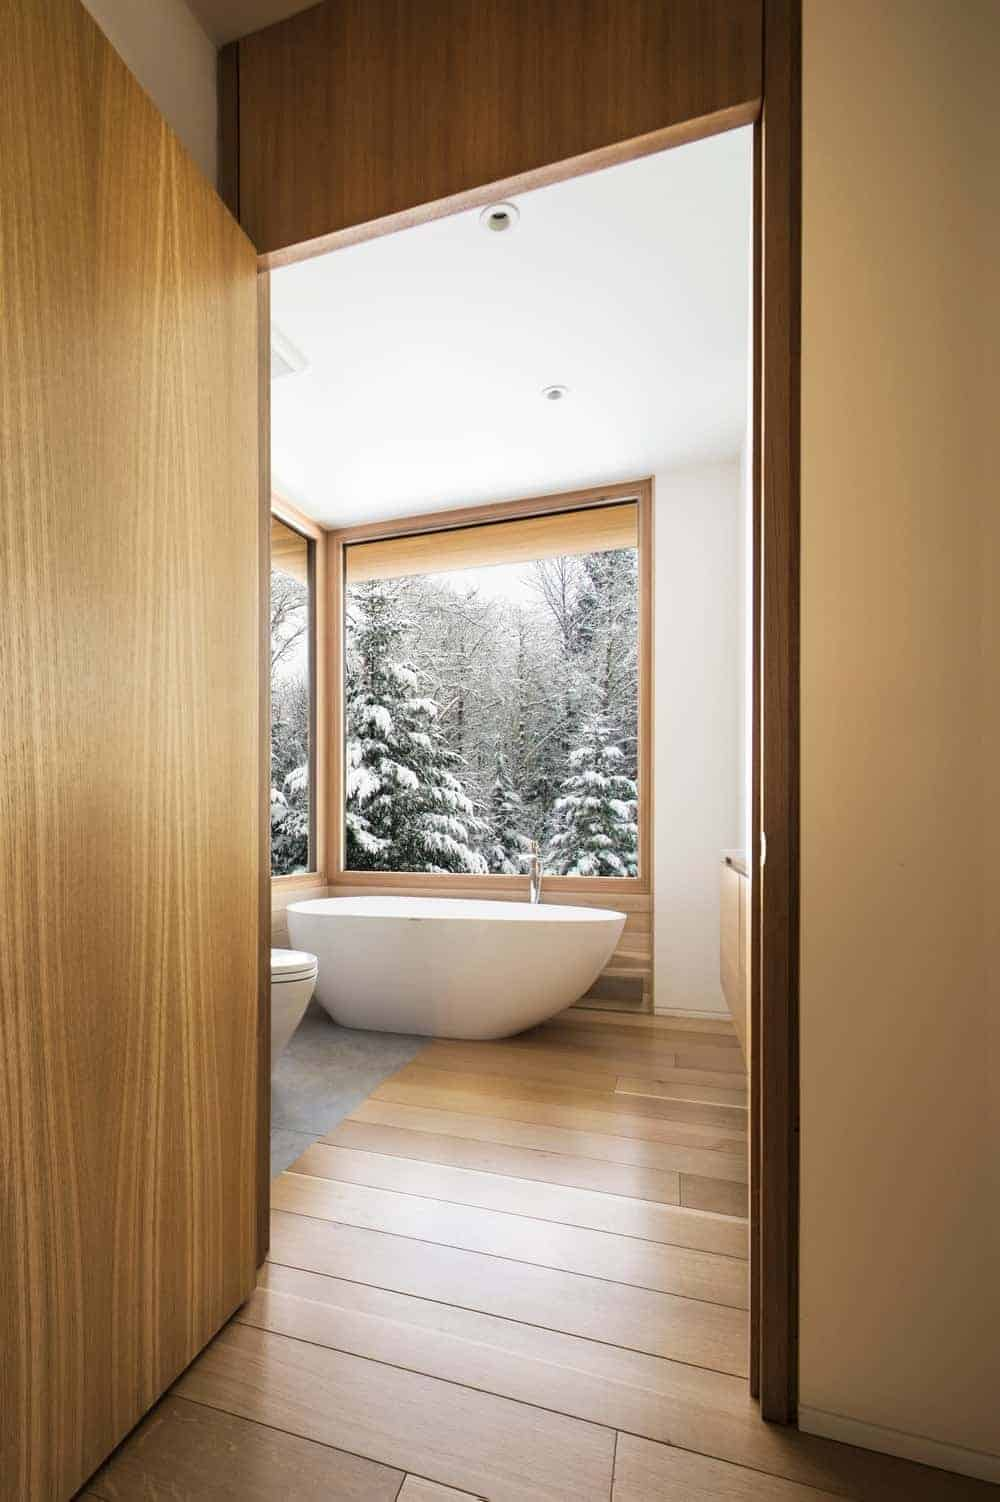 A wooden door opens to this cozy bathroom with a toilet and freestanding tub over wood plank flooring and against the white walls.